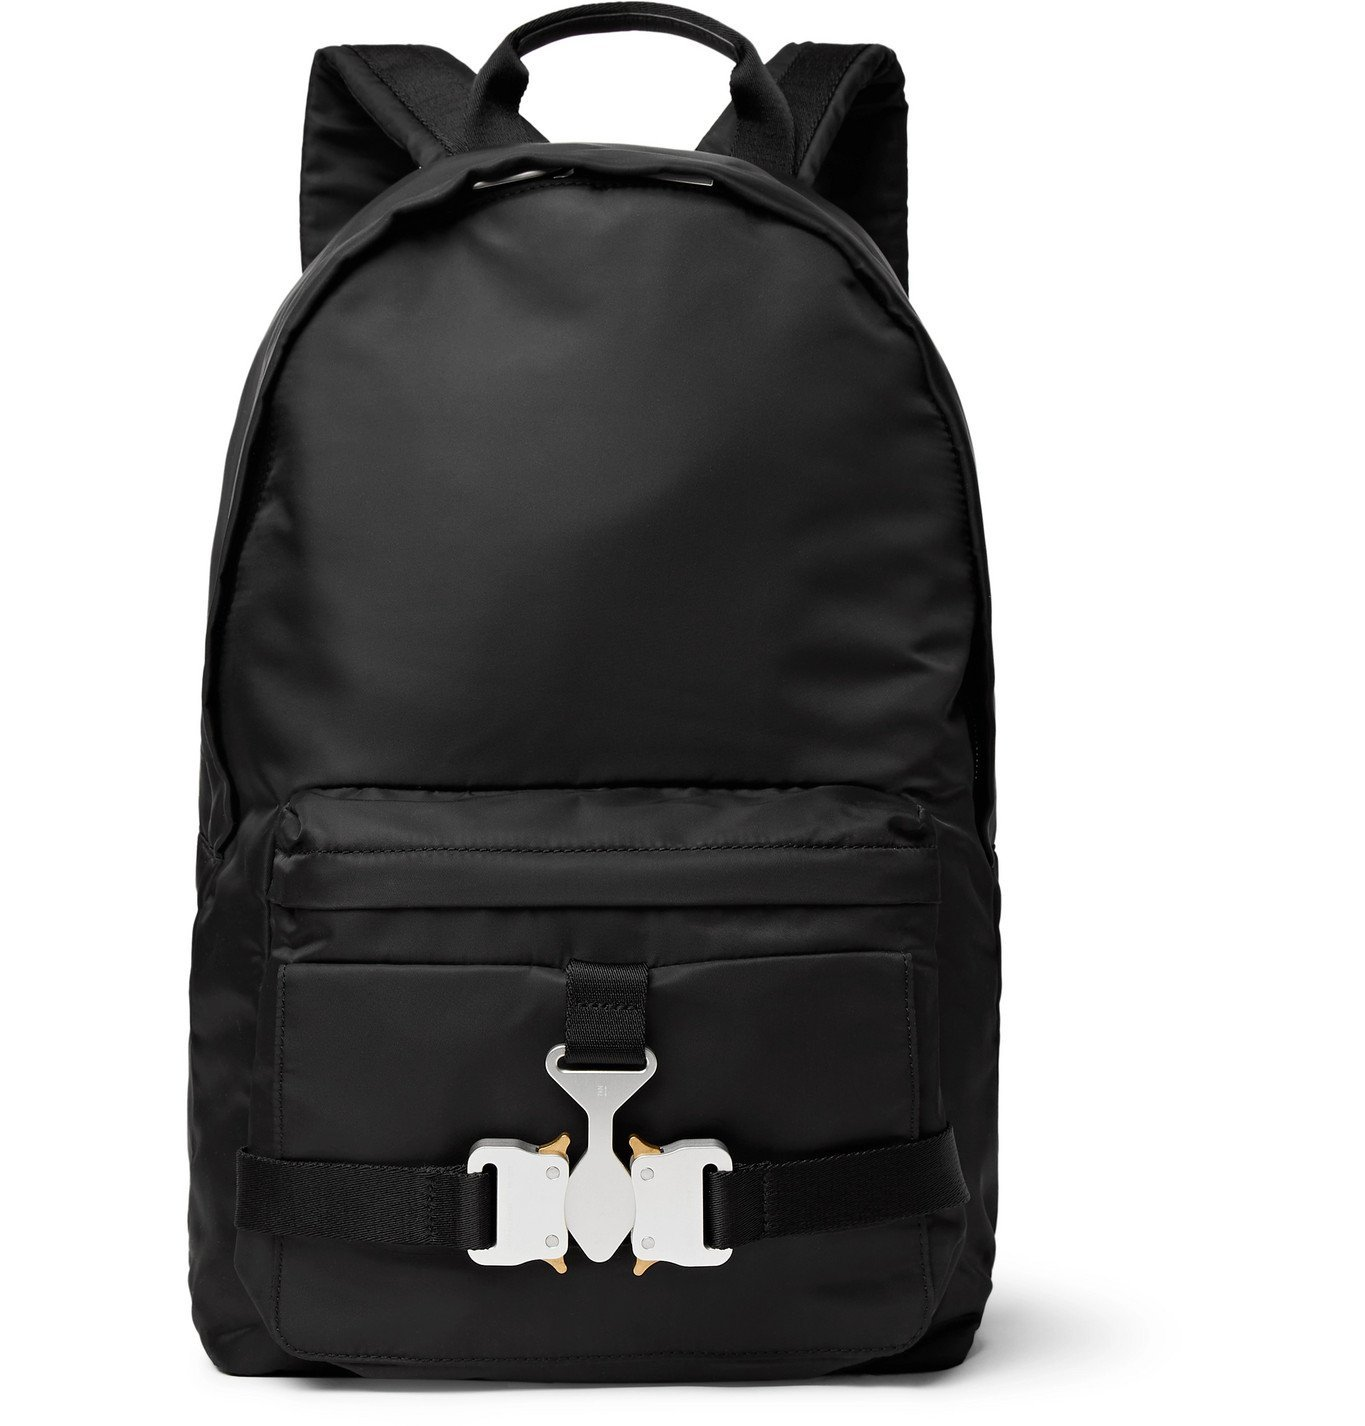 1017 ALYX 9SM - Tricon Leather-Trimmed Nylon Backpack - Black